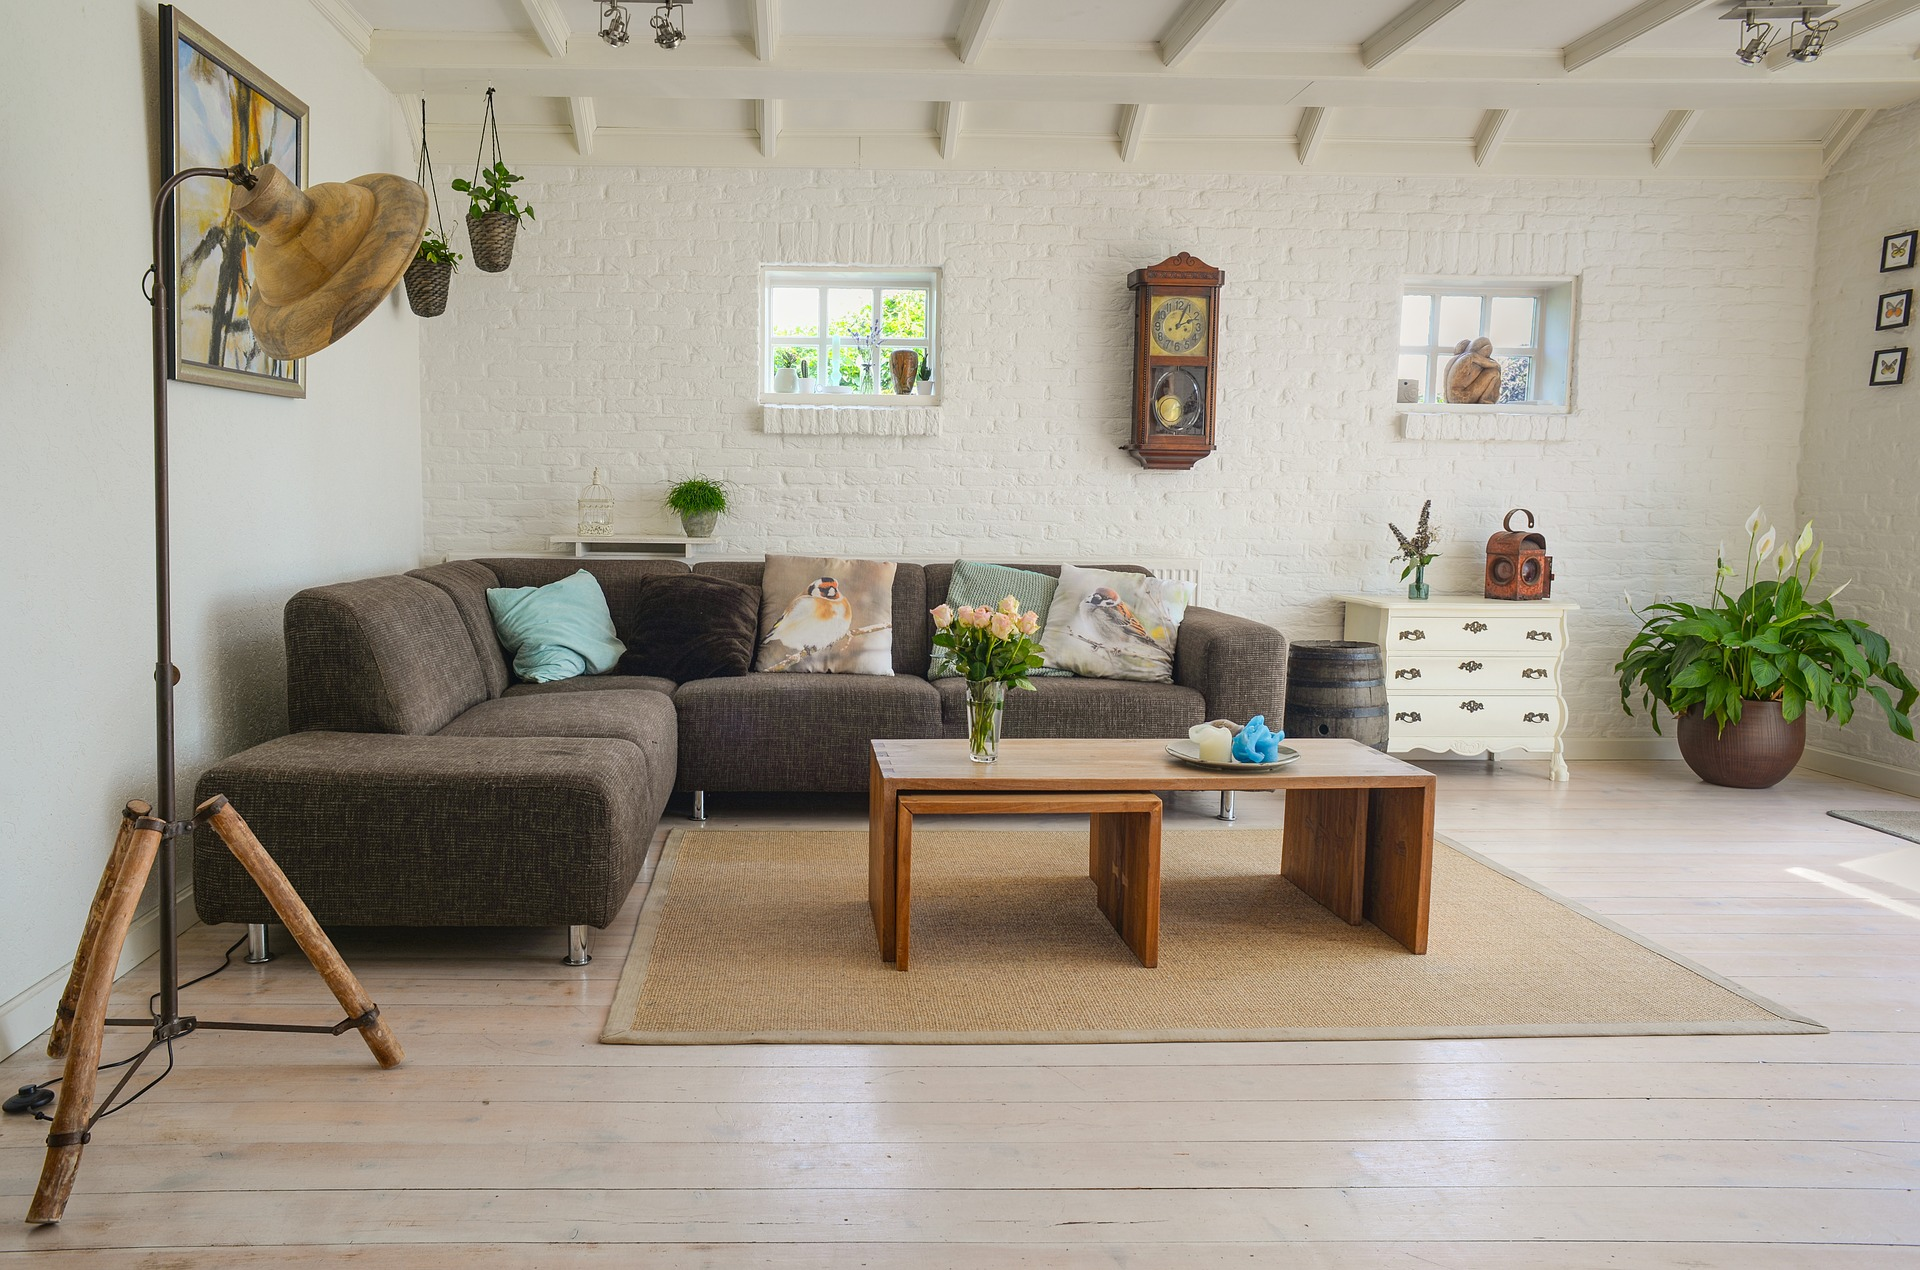 living room, home interior space